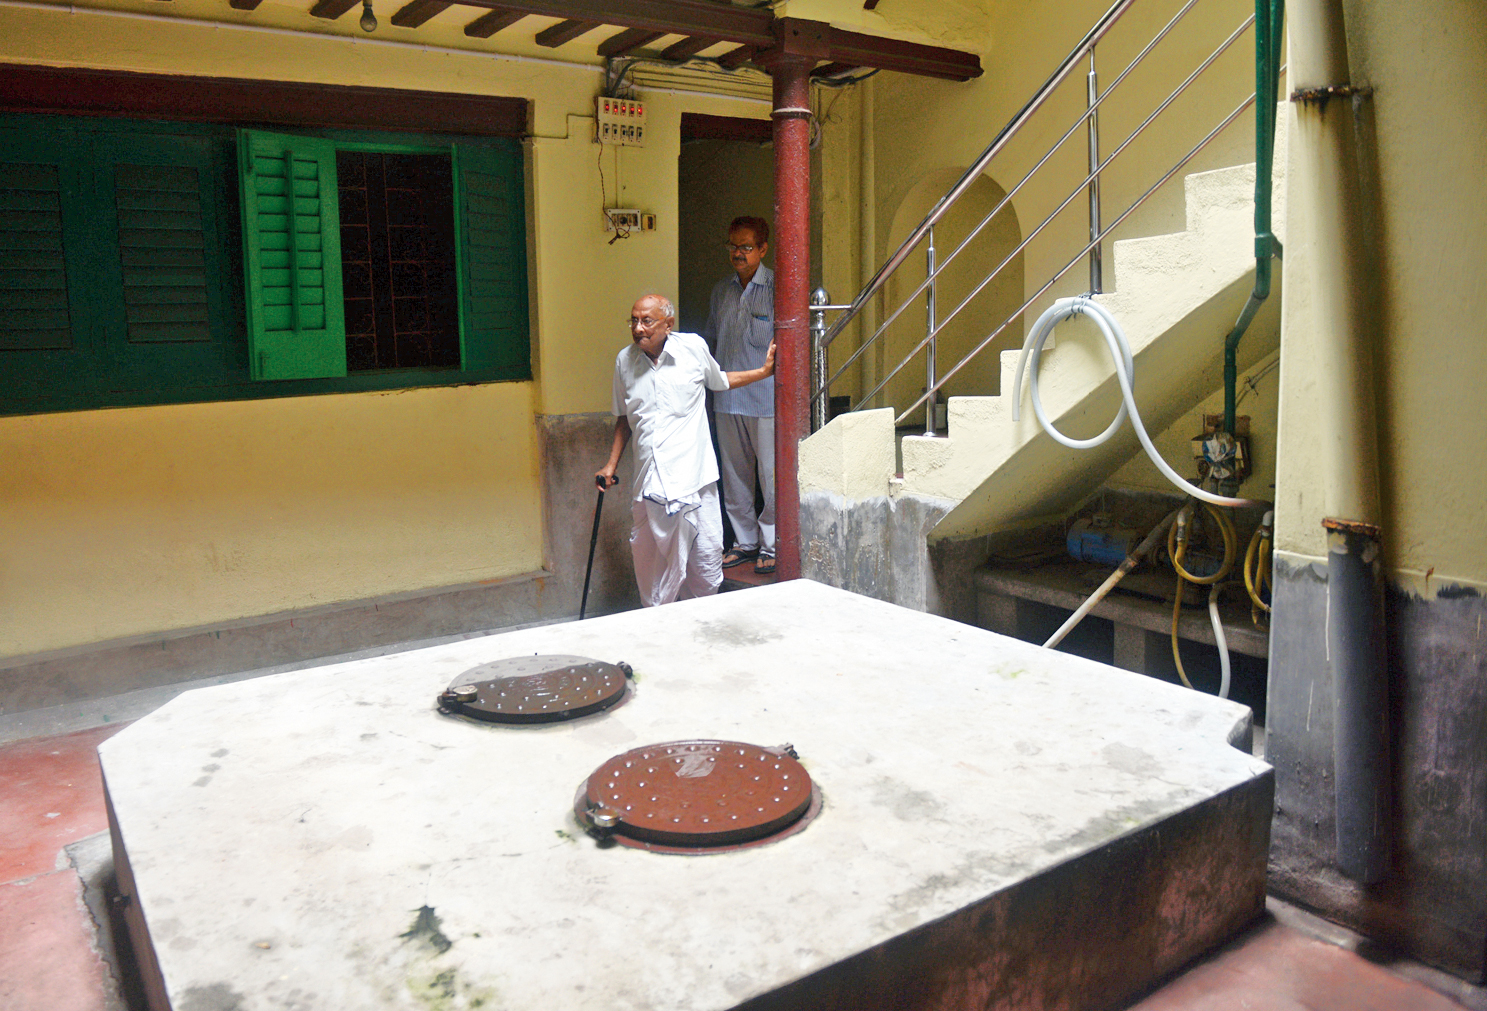 From the Mookerjee godown, two hackney carriages delivered the arms to the house of Bhujanga Dhur in Jelia Para Lane. The tank was not there in 1914 and the arms were kept in the courtyard, said Barendra Chandra Dhur (the elderly man with a walking stick), Bhujanga Dhur's nephew.  From the Dhur house, the arms were distributed to various groups of revolutionaries